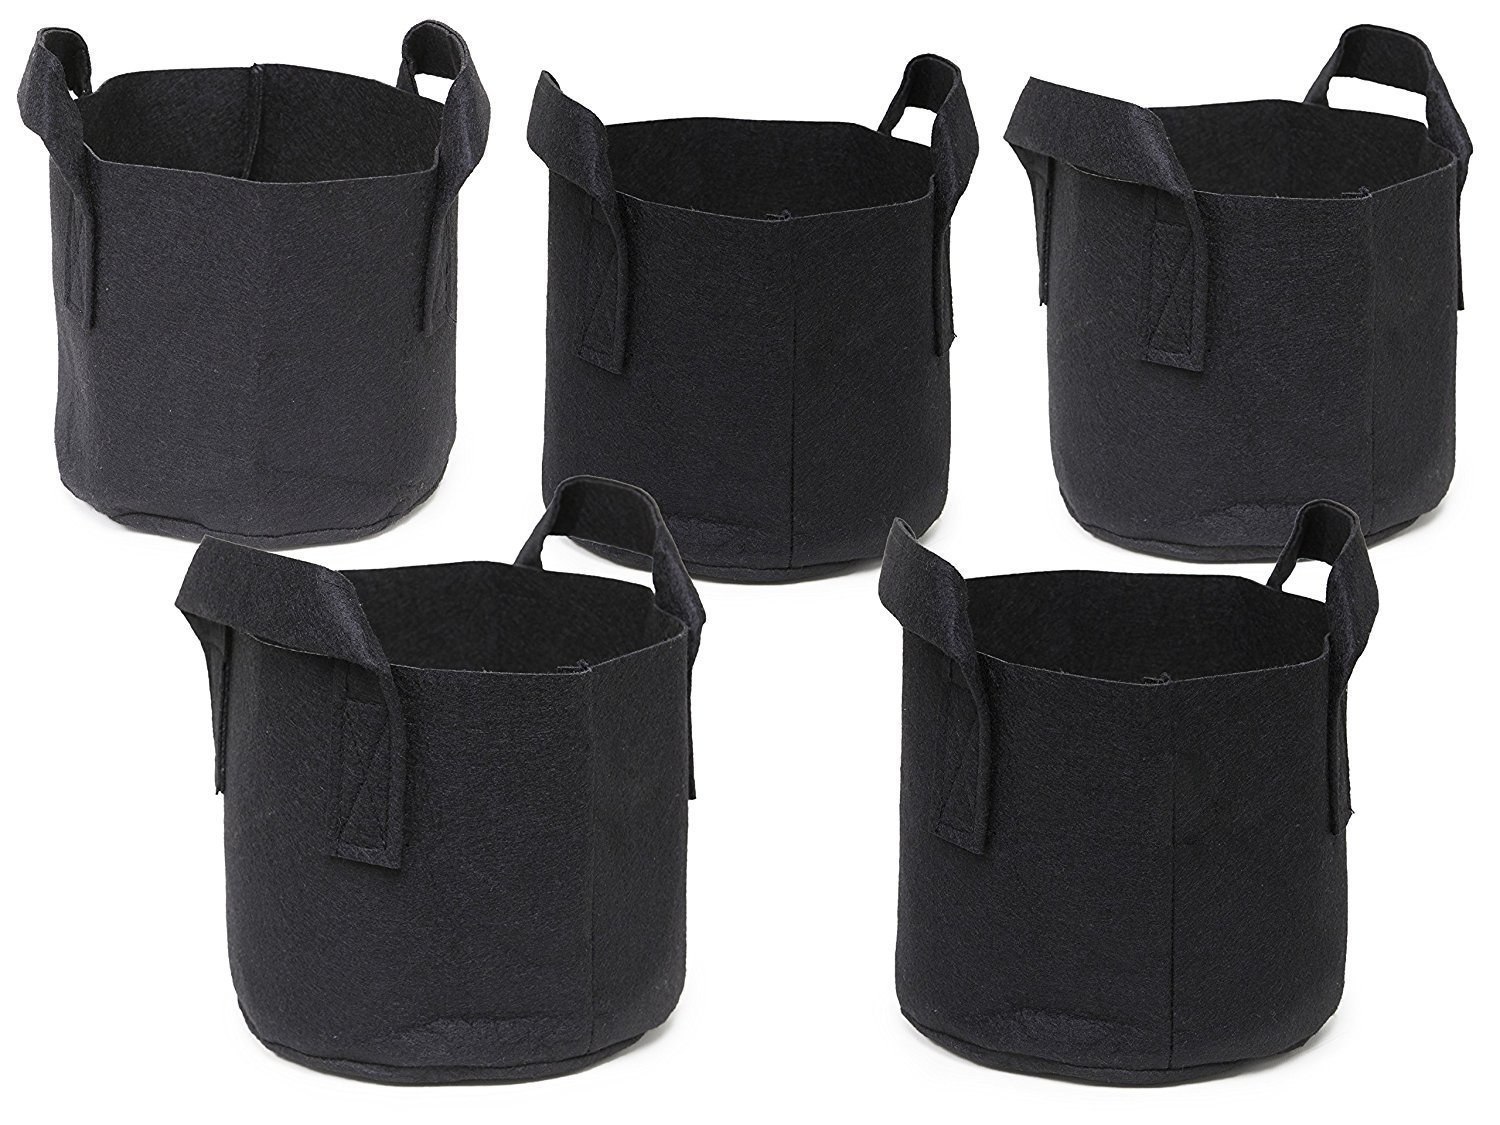 Ndier 5 Pack Plant Growing Bag Planter Bags with Handle Straps Aeration Fabric Pots , Non-woven Breathable Permeable Degradable (Black) (3 gallon)